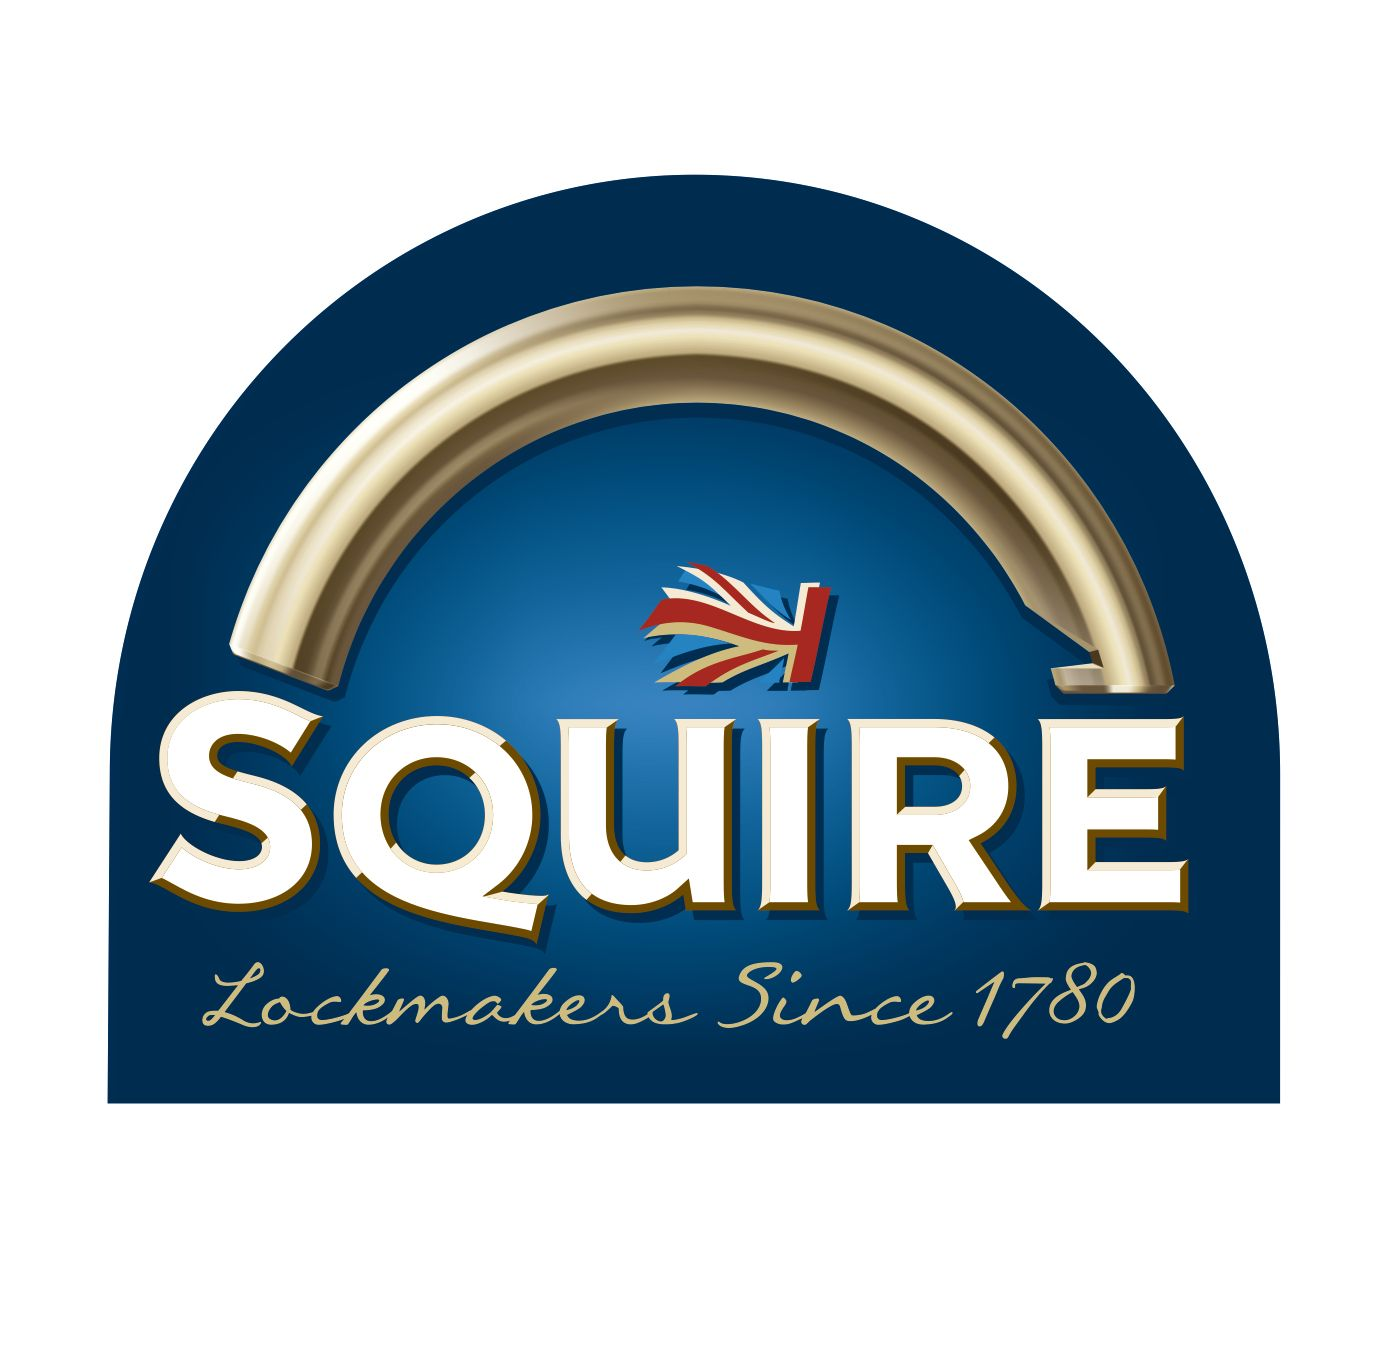 Henry Squire and Sons Ltd